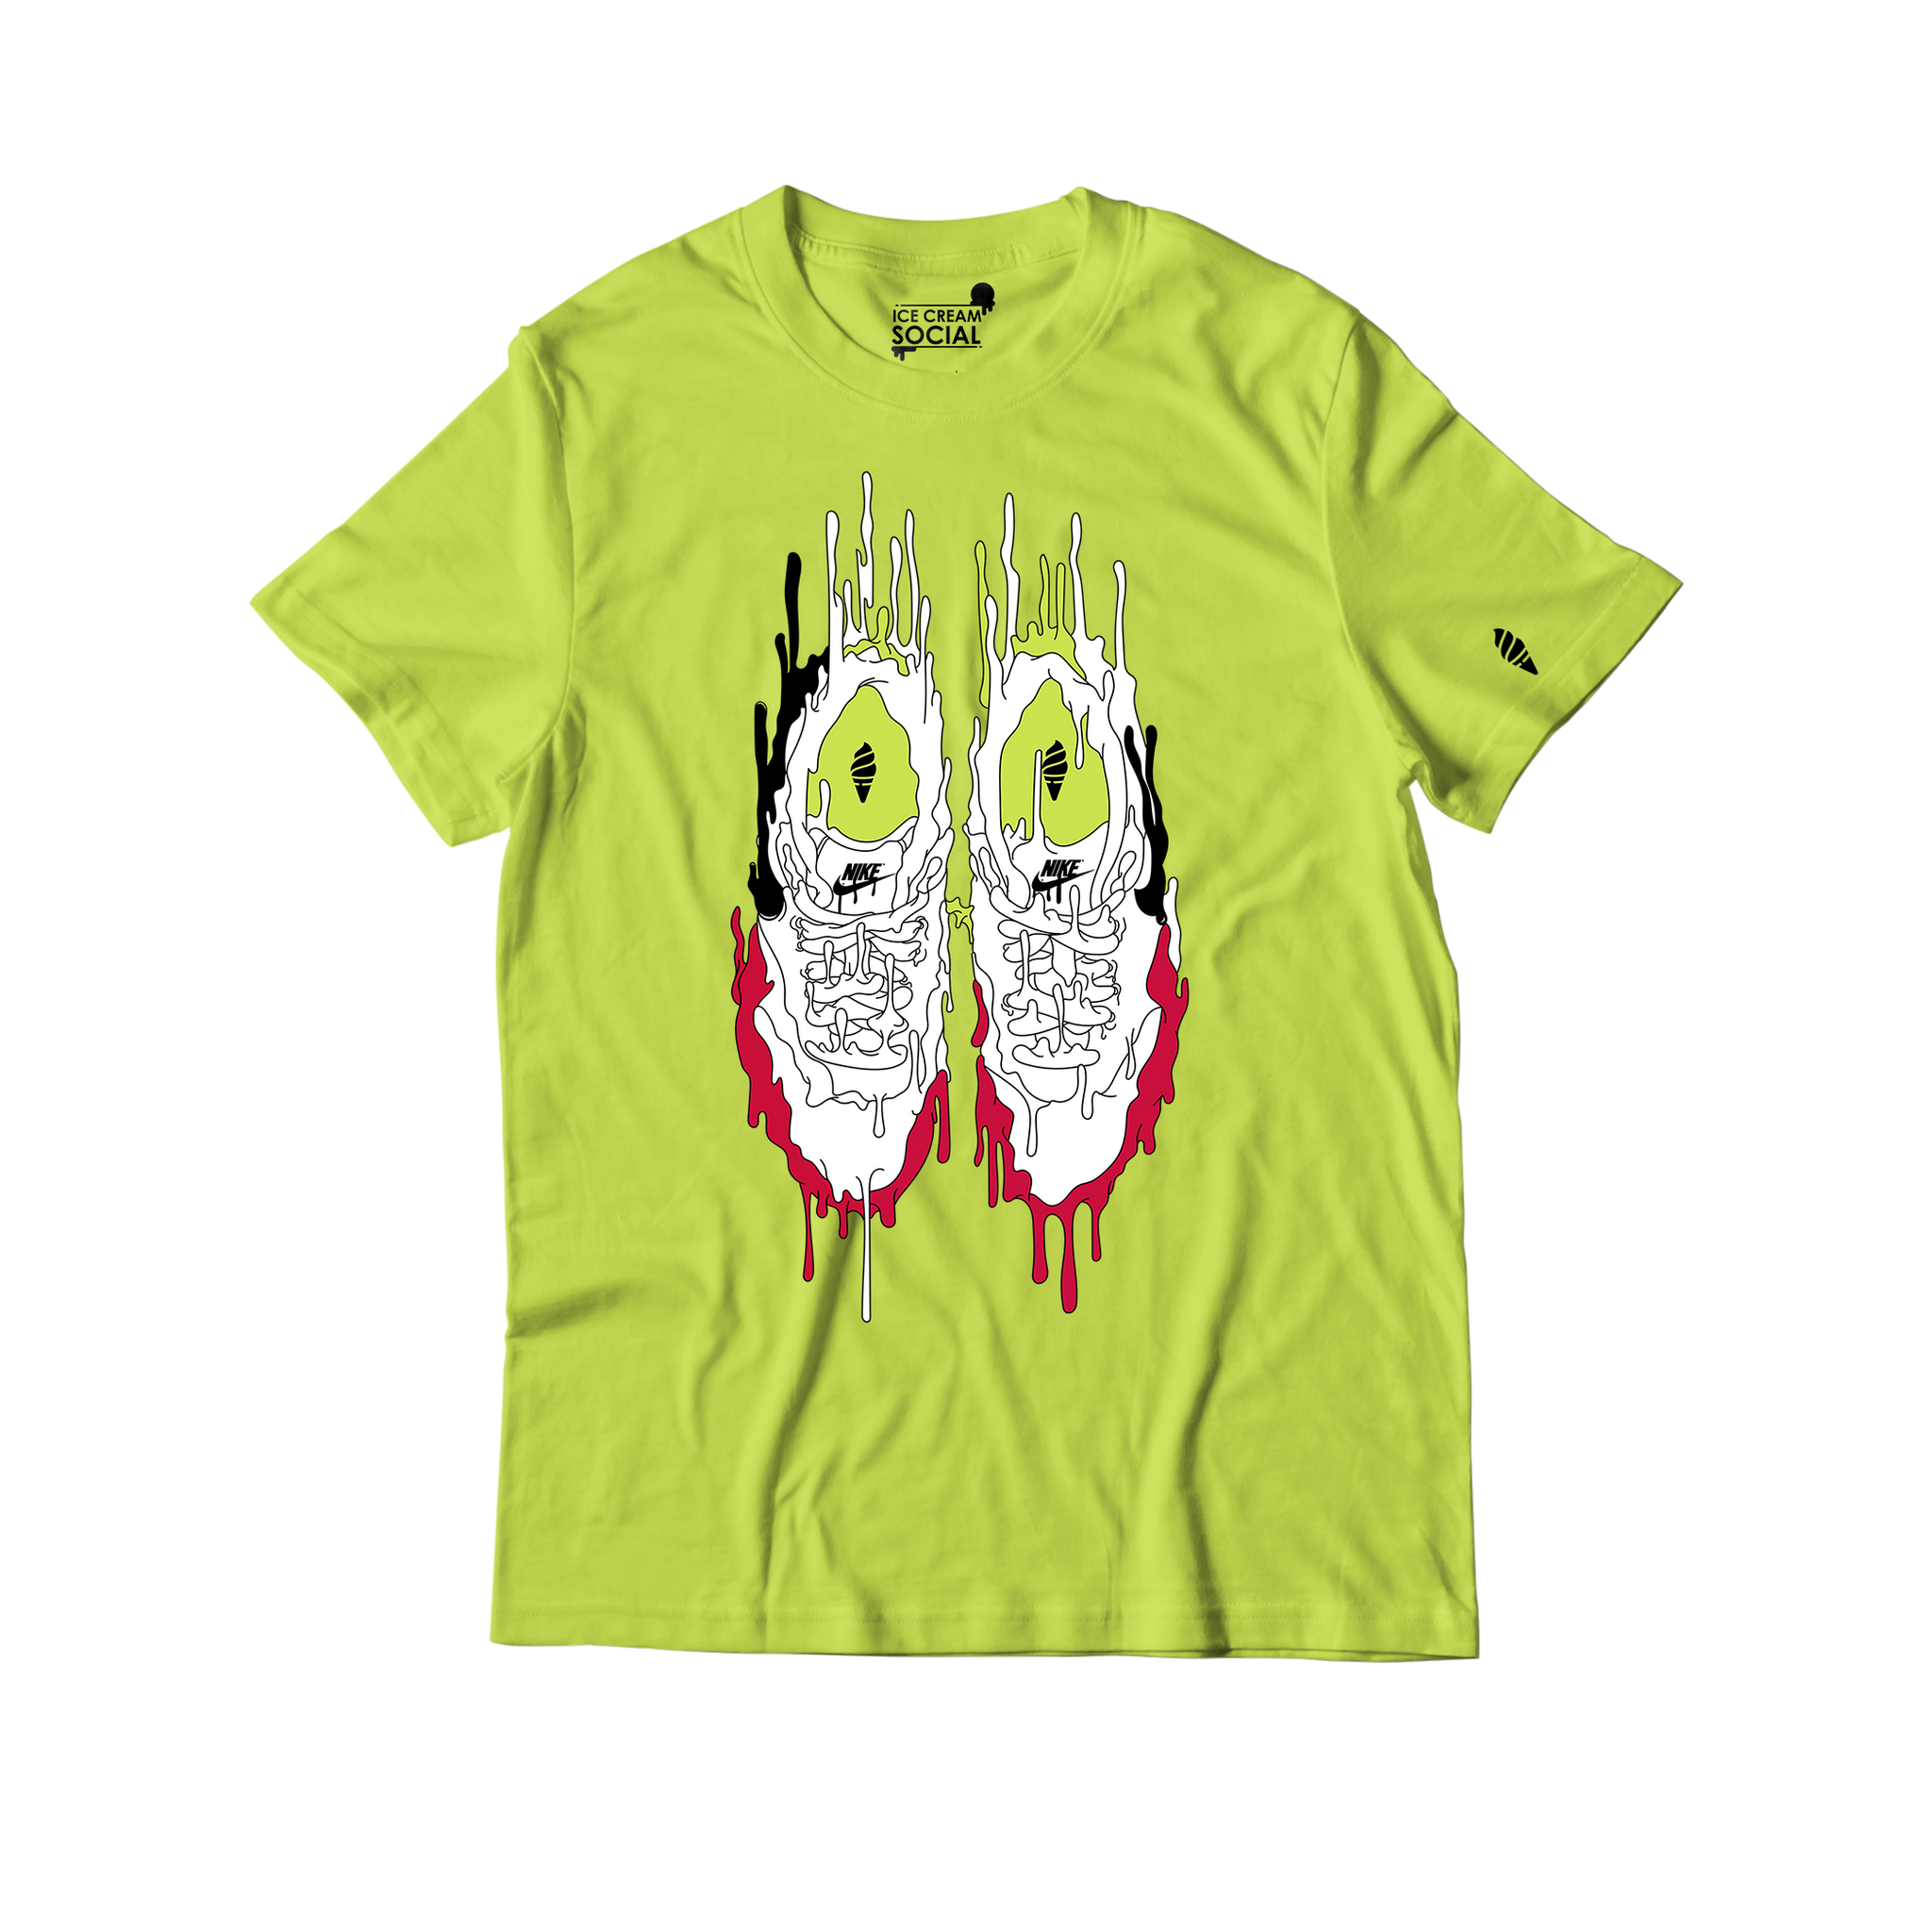 Ice Cream Social Air Max Drip T-Shirt - Volt